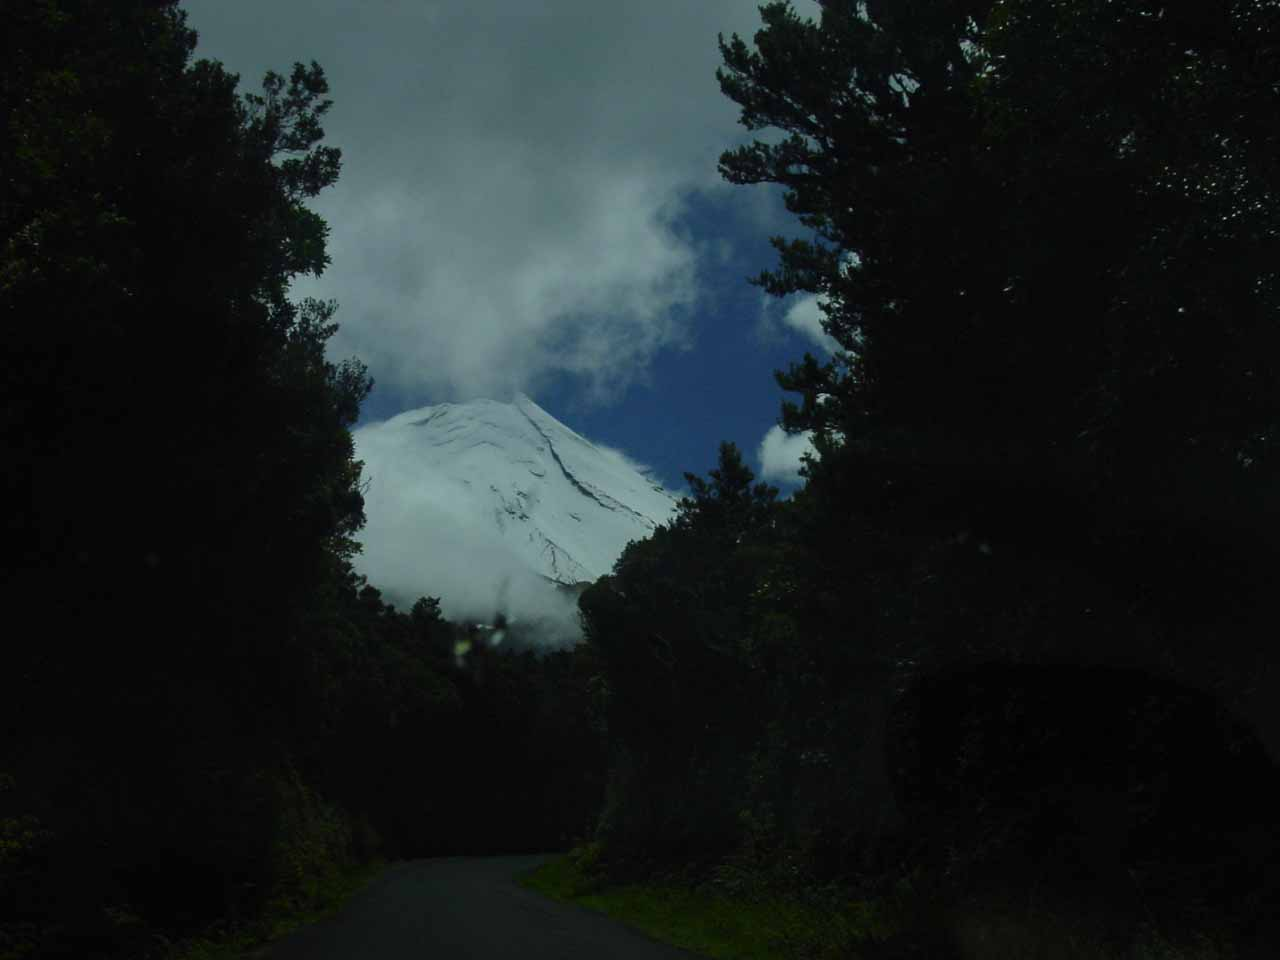 During the drive up Manaia Rd, we could see parts of the snowy peak of Mt Taranaki in November 2004